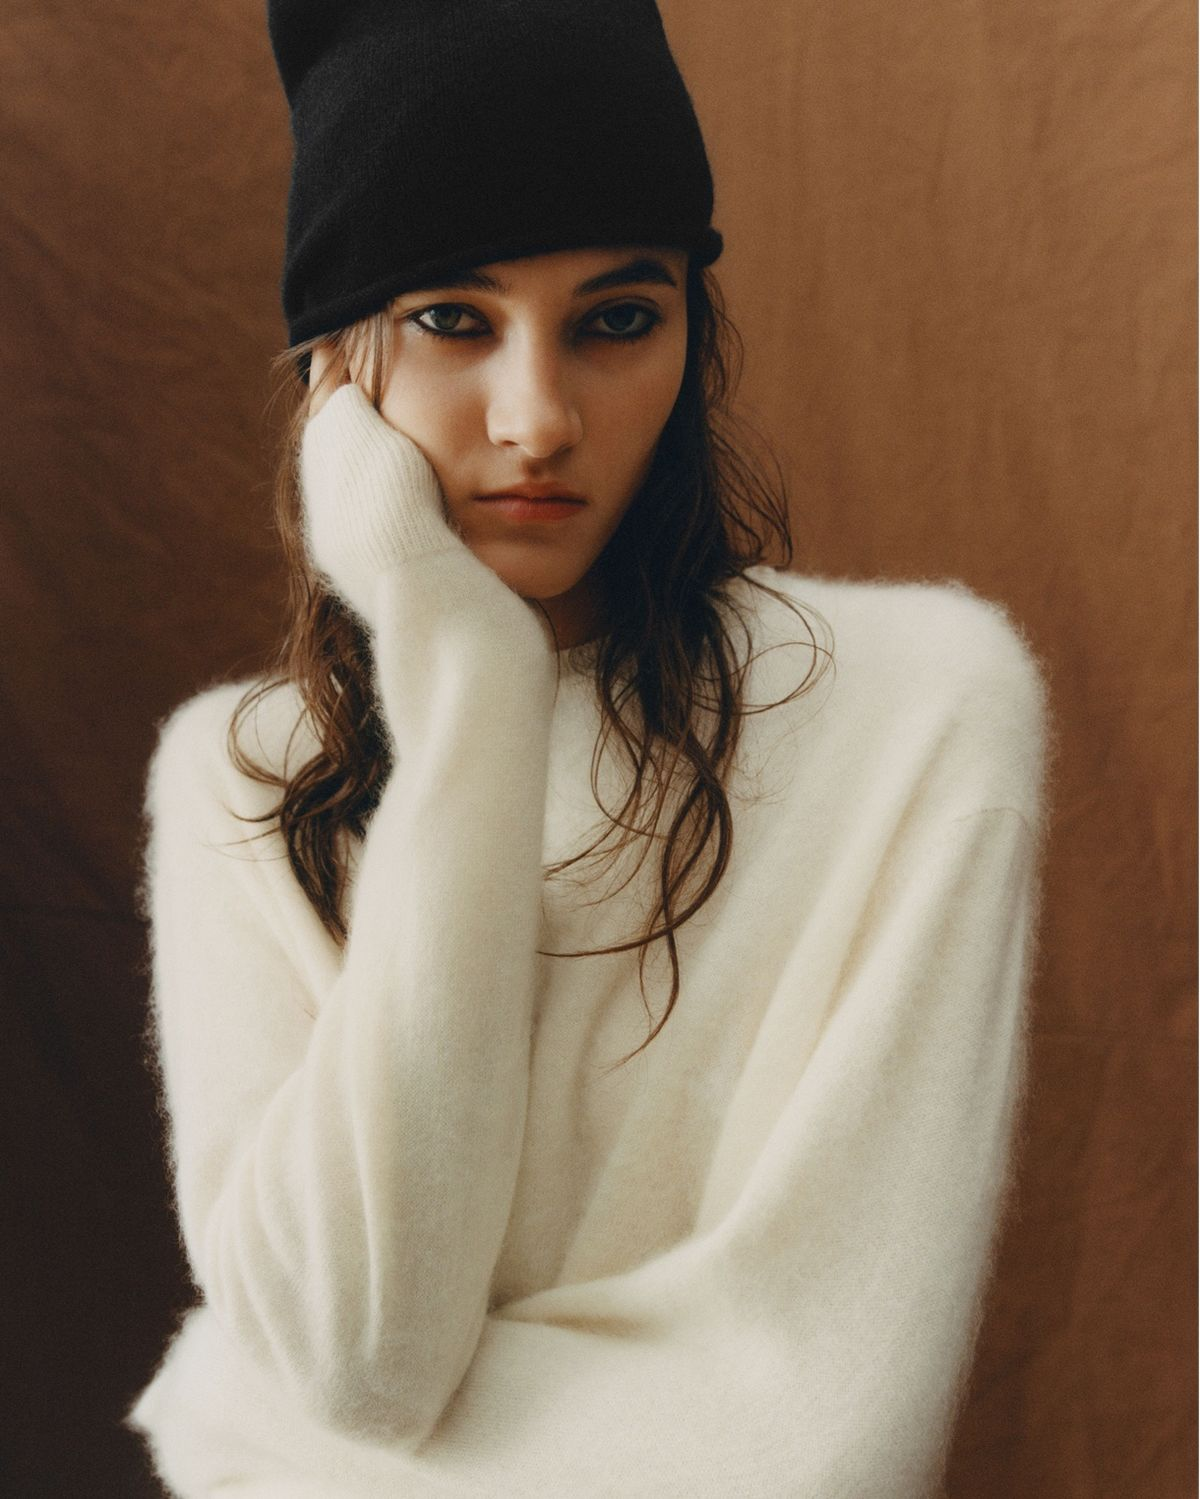 Portrait of a woman wearing a white jumper and black beanie.